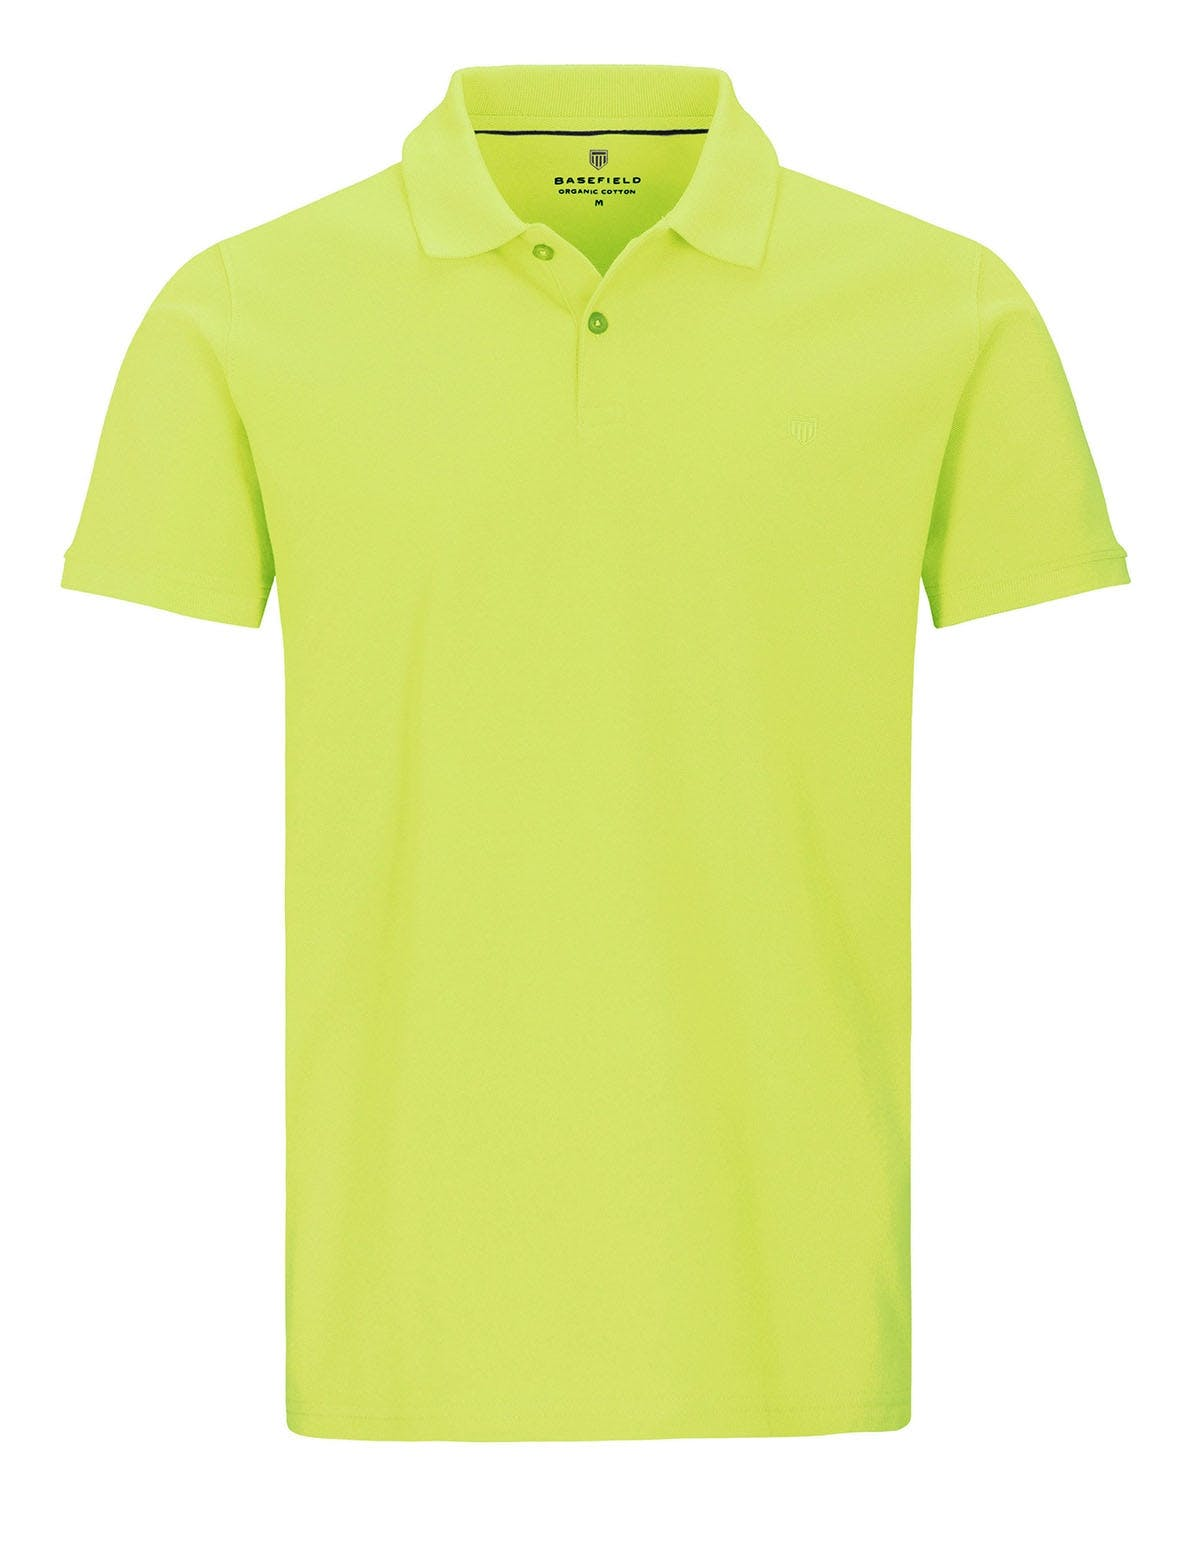 ORGANIC COTTON Polo Pique - Bright Lime